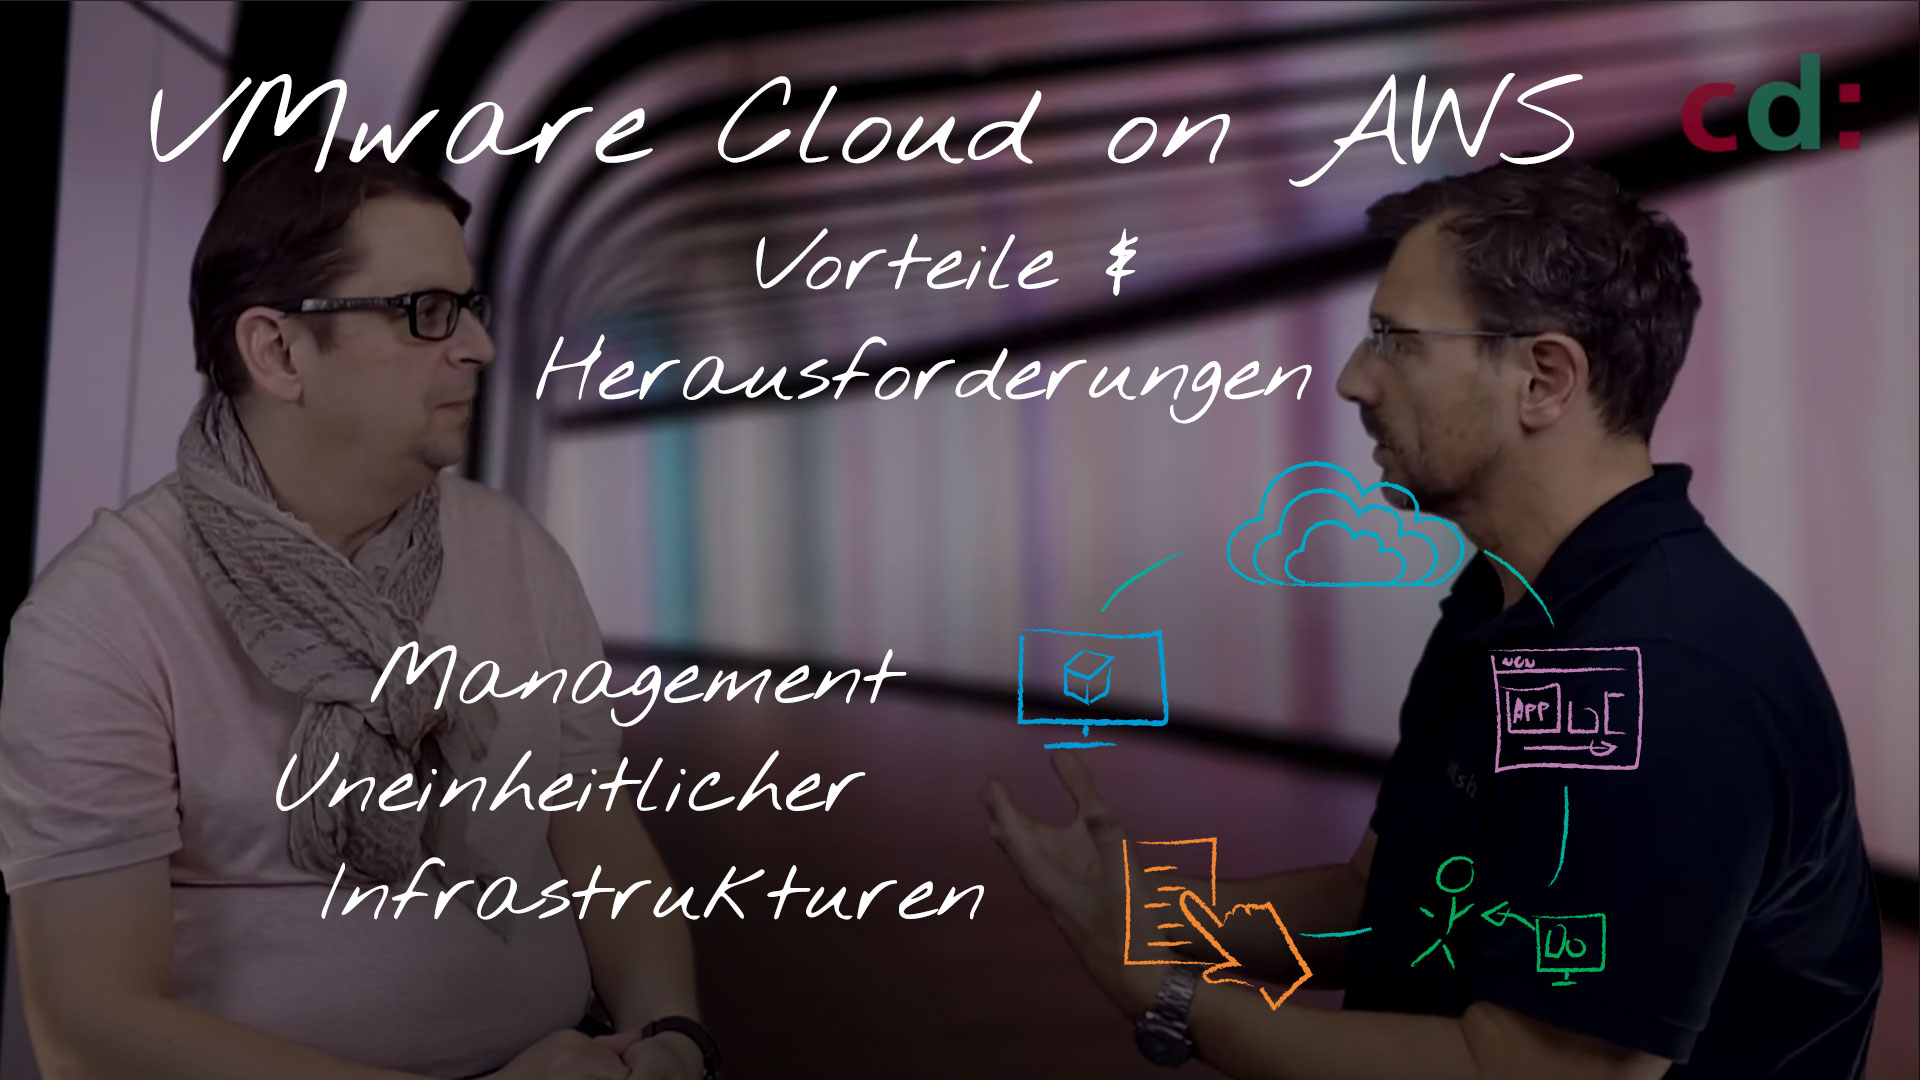 VMware Cloud on AWS – Management uneinheitlicher Infrastrukturen